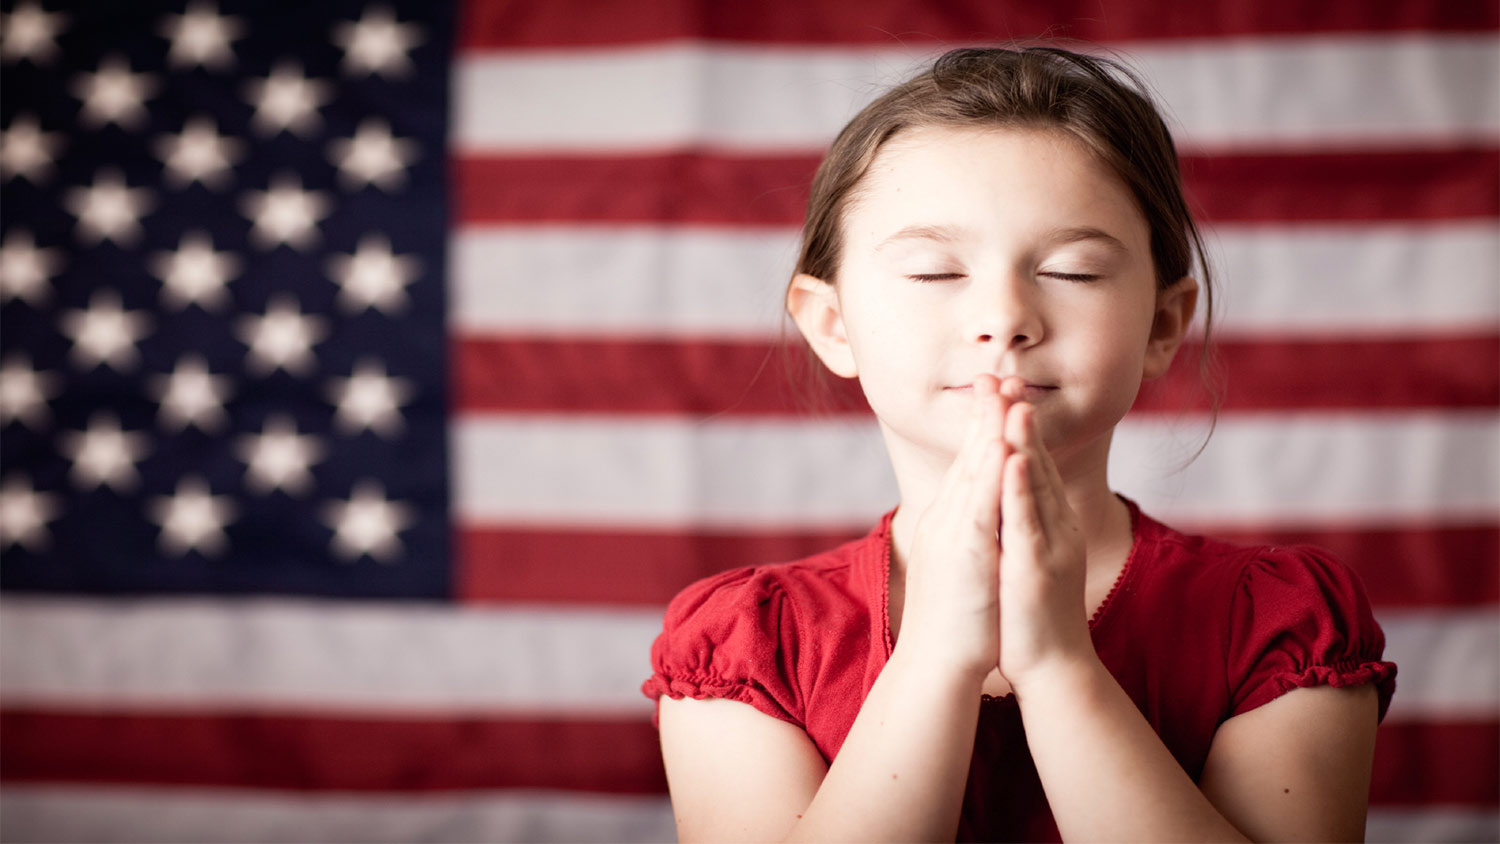 girlprayingamericanflag-blog-050516